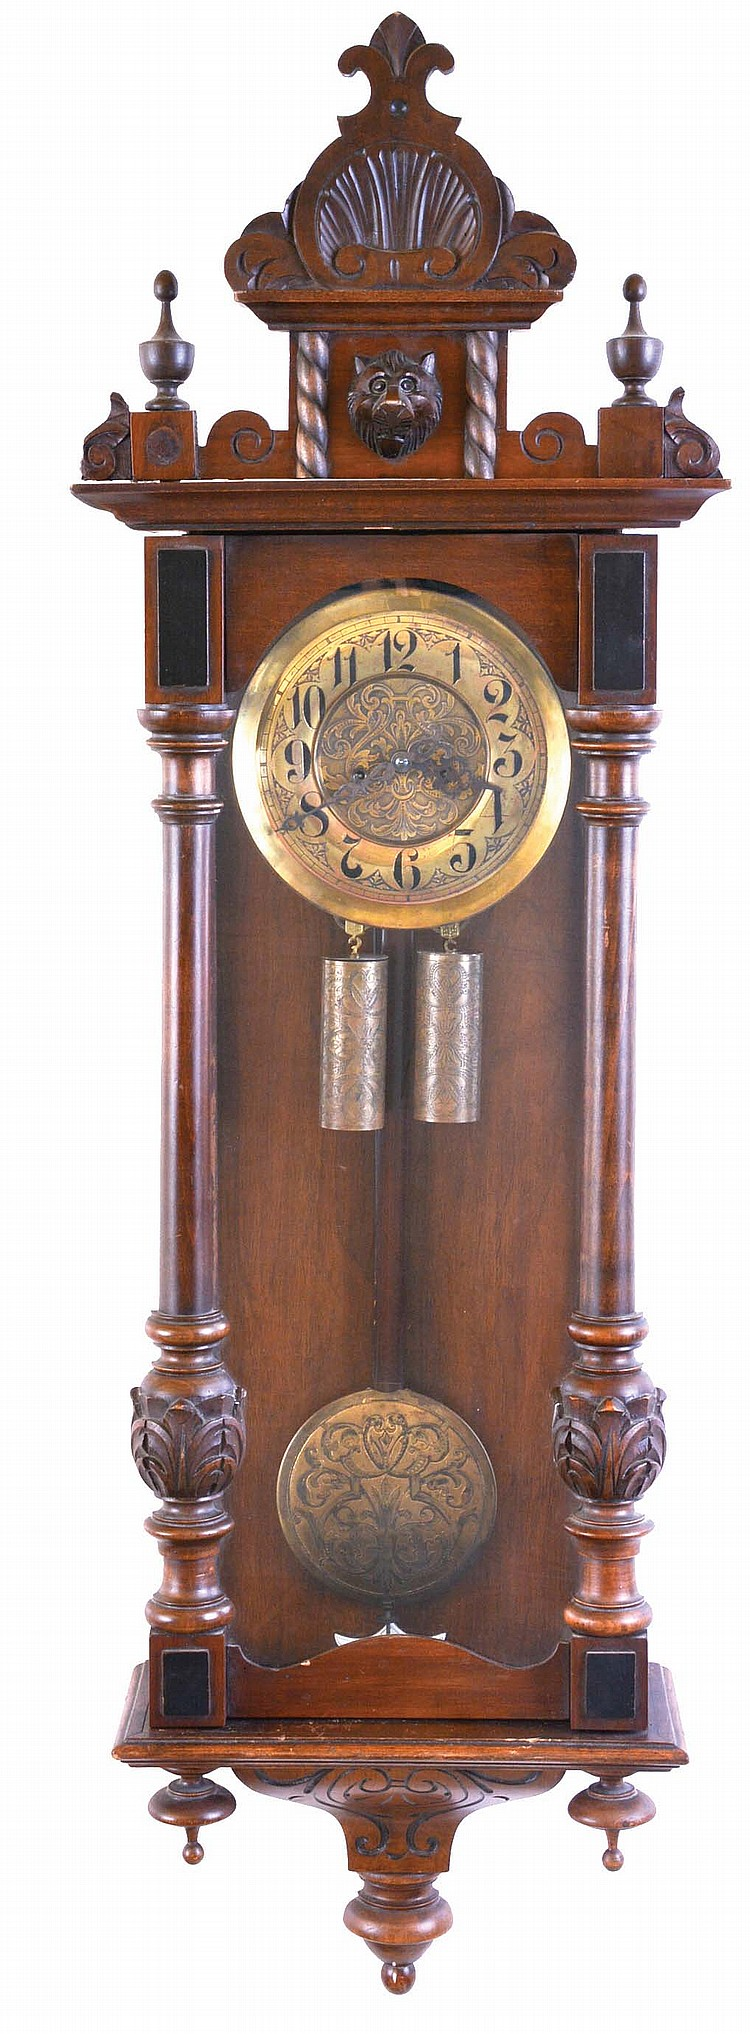 Gustav Becker, Freiburg, Germany, walnut case with turned and carved ornament, Arabic numeral, engraved brass dial, blued steel hands, 8 day time and strike movement, engraved brass pendulum and weights